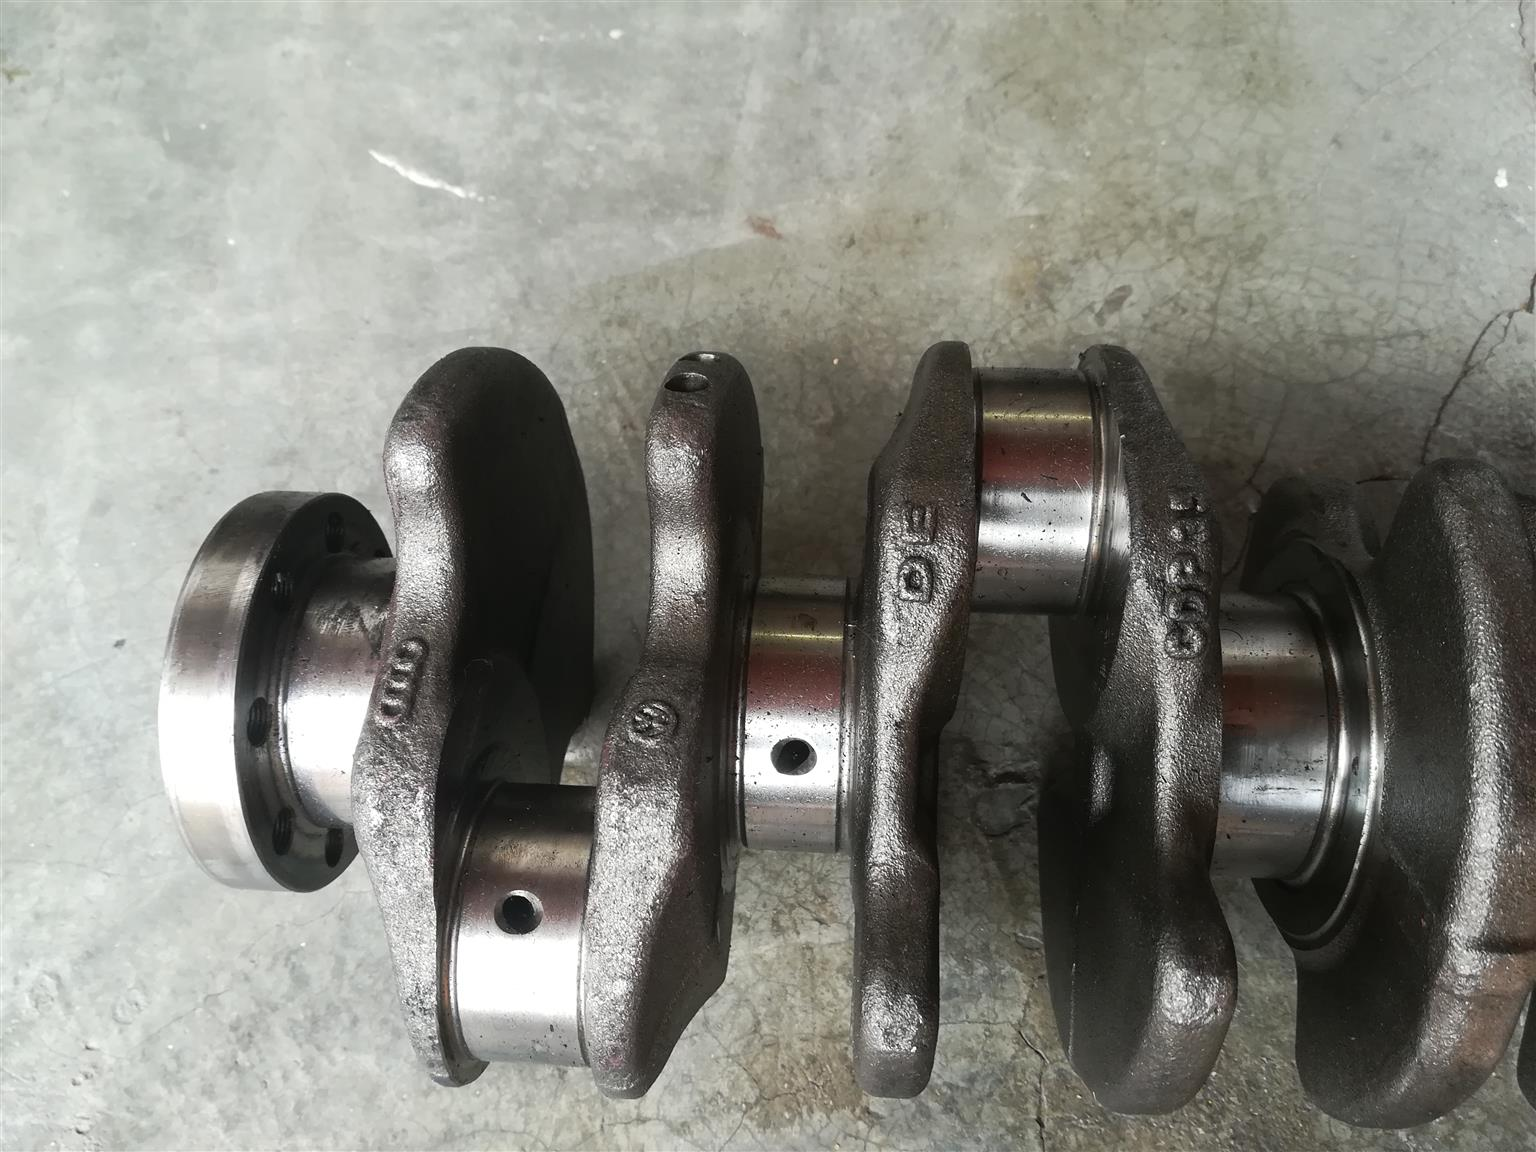 VW Crafter 2.5TDI BJK Crankshaft for sale